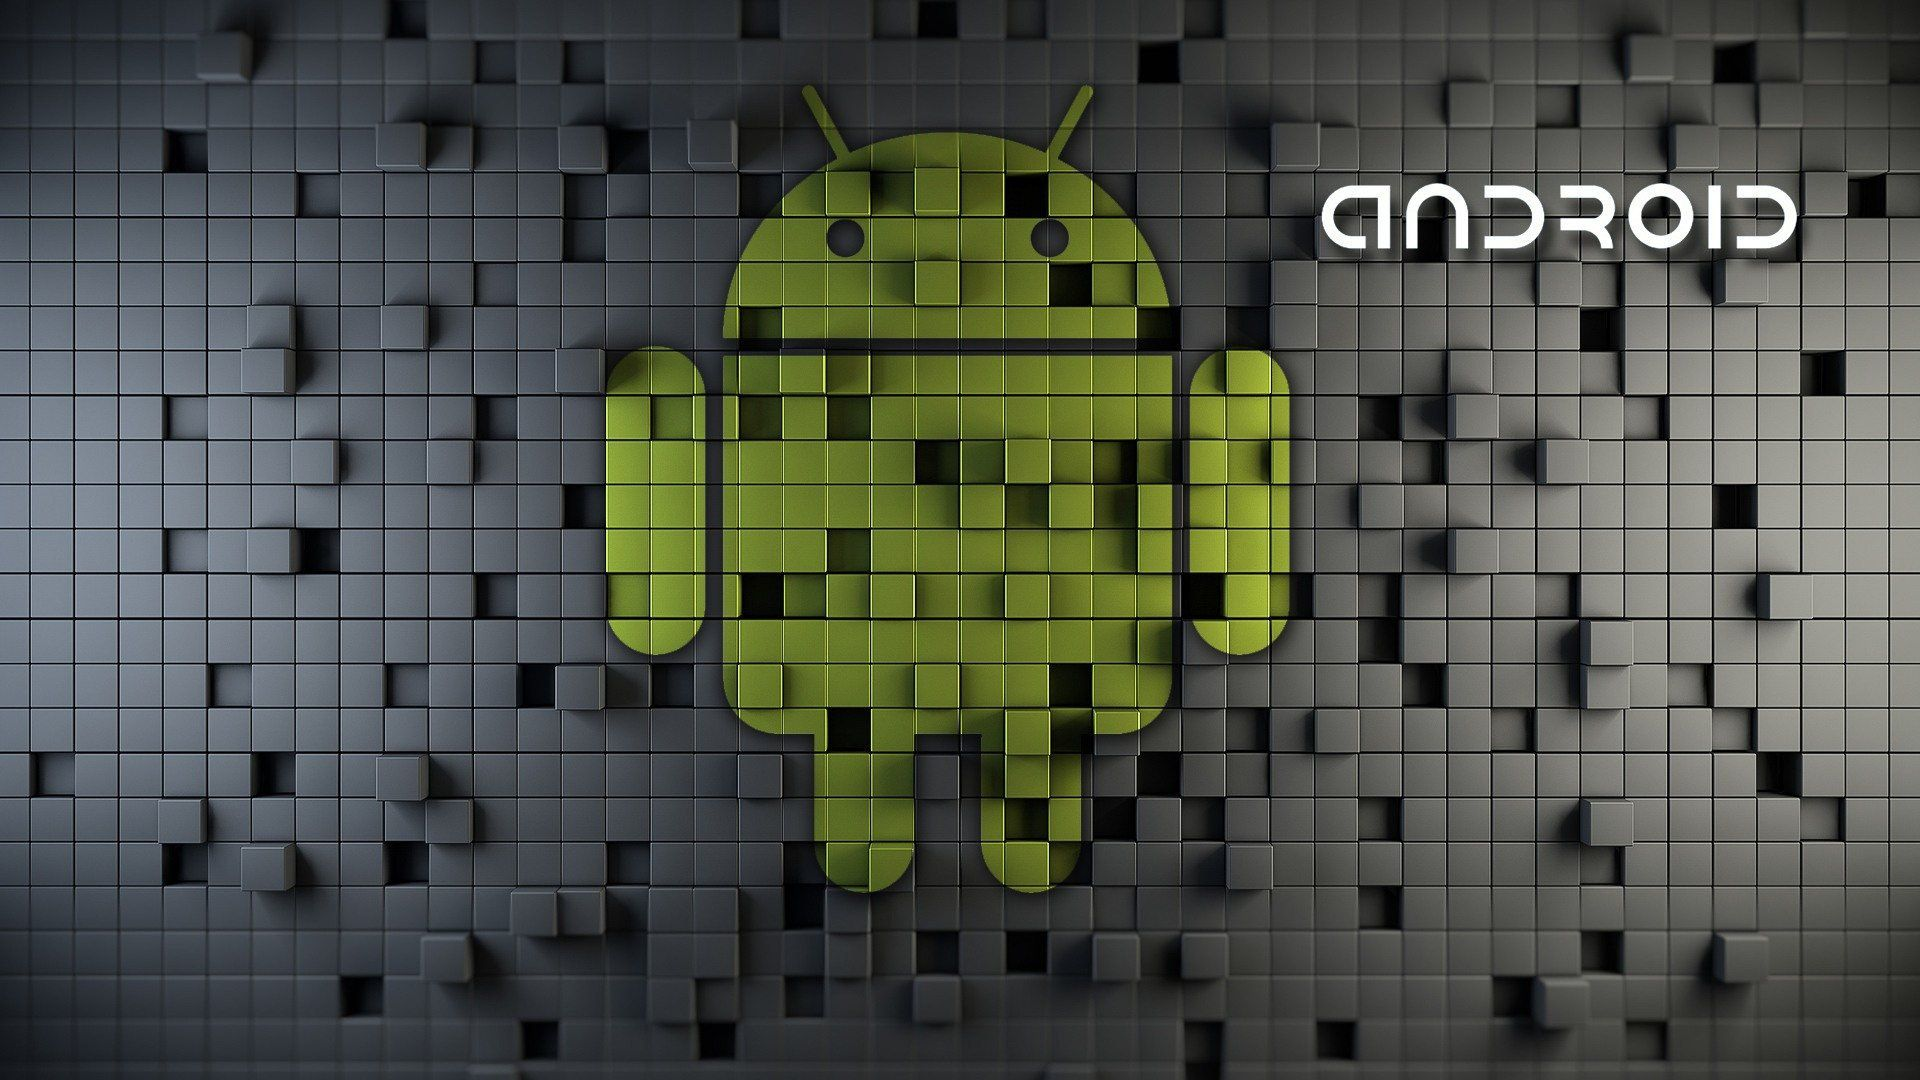 Wallpapers For Desktop Android